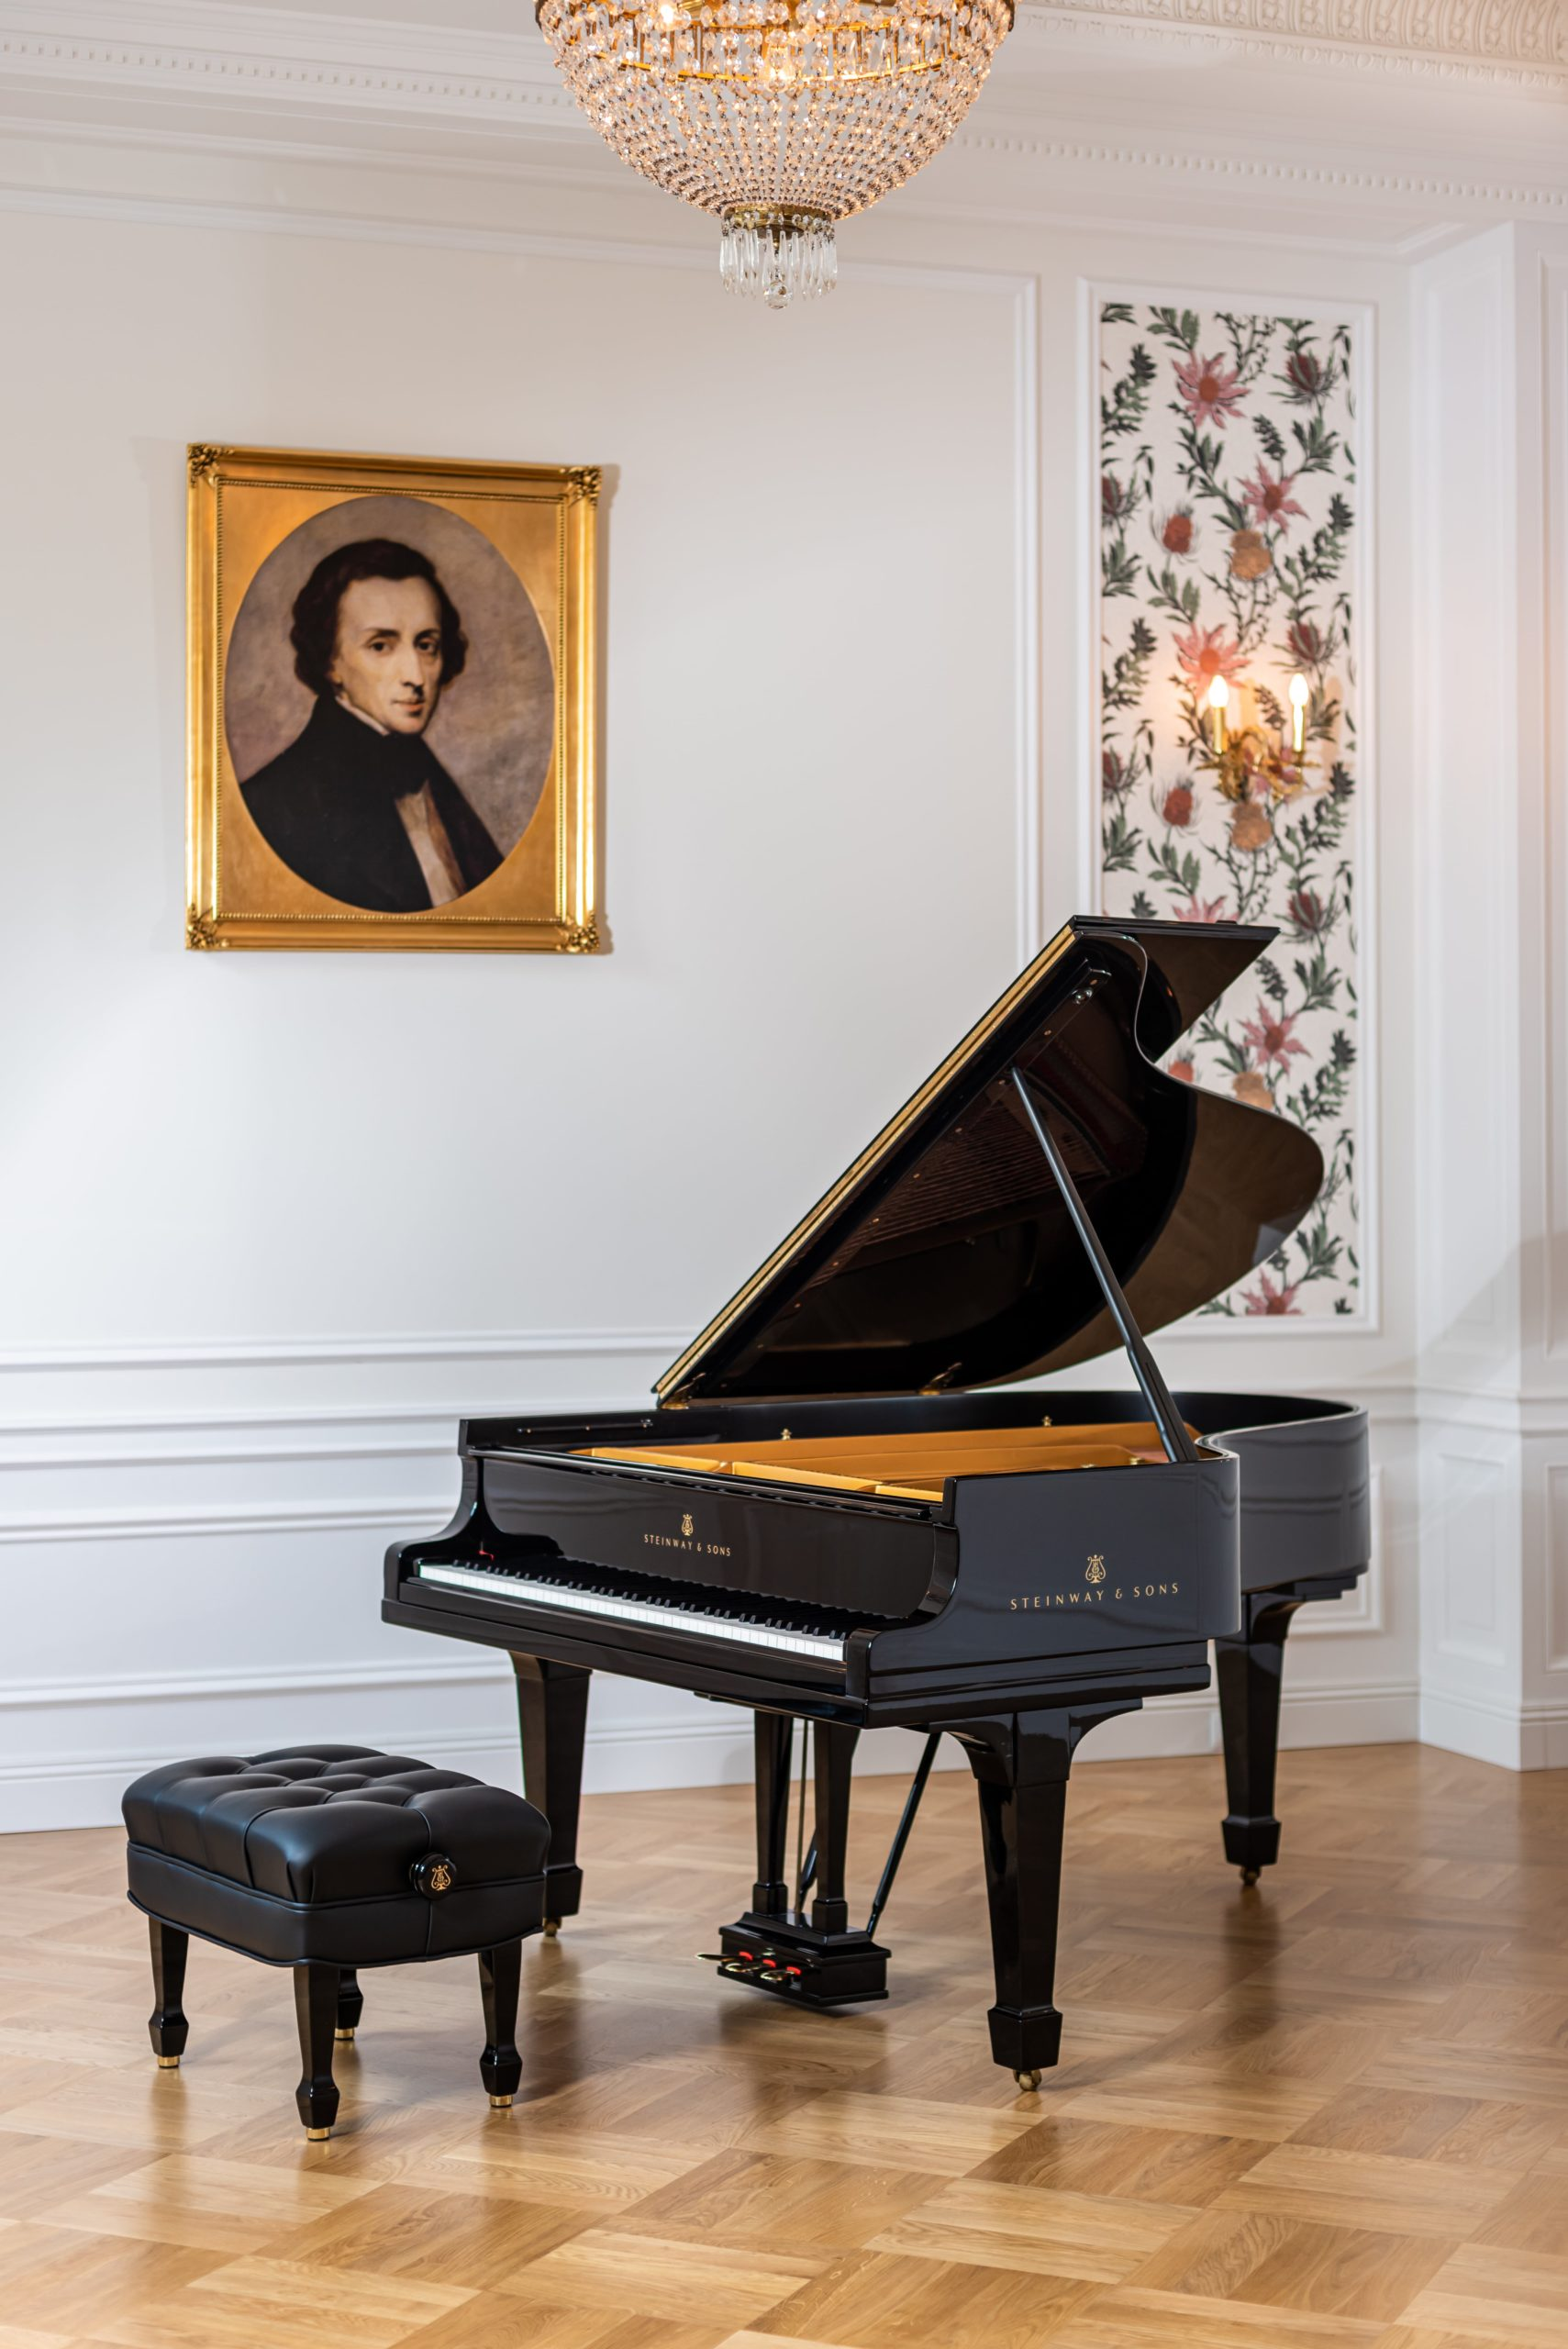 Chopin portrait hanging over the black piano at Fryderyk Concert Hall